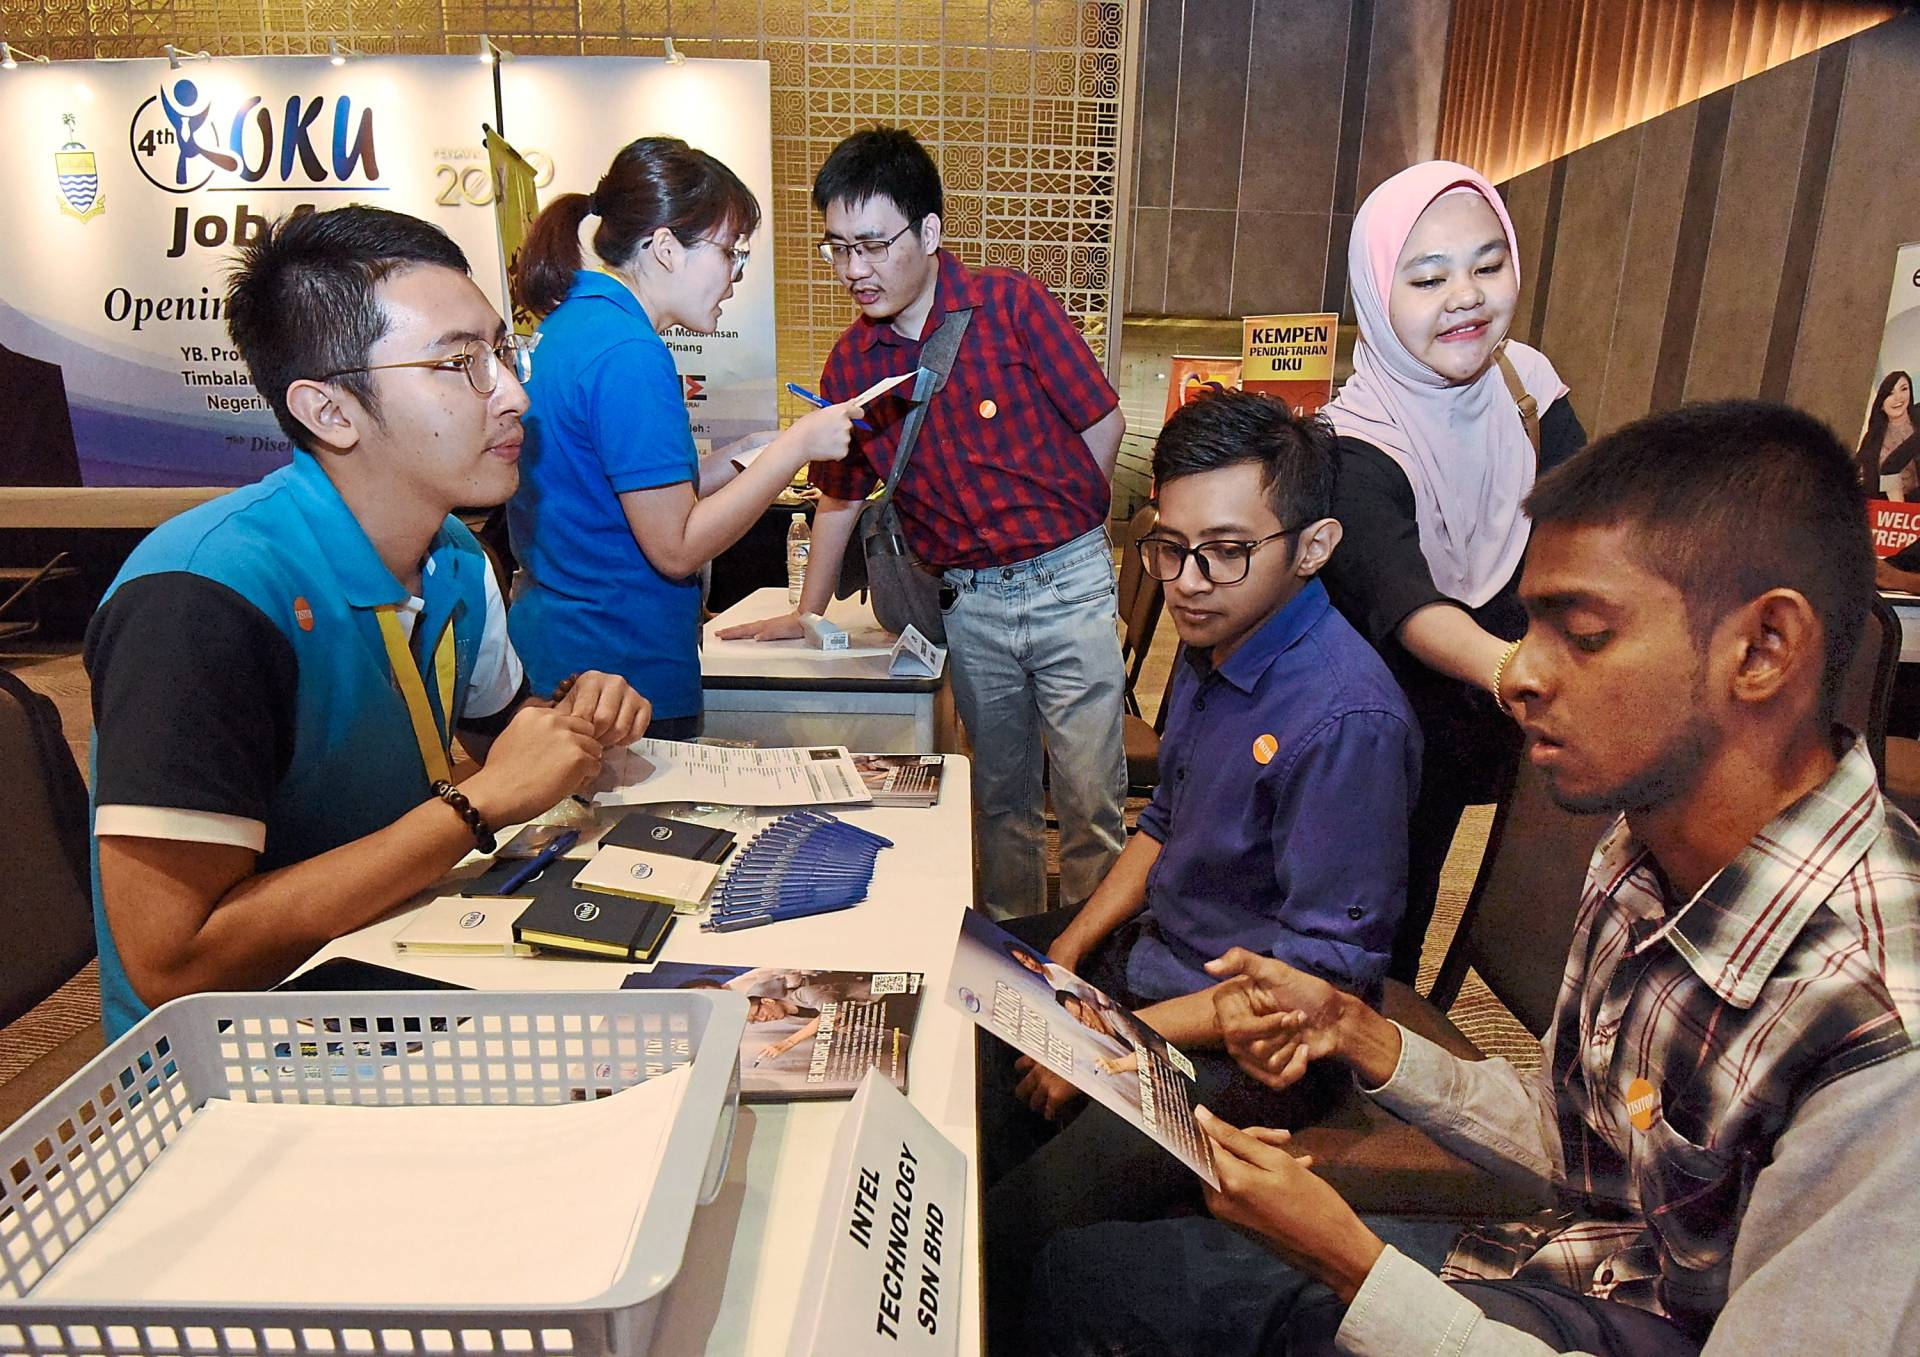 (From right) Muhammad Syafiq Ameen, Muhammad Syafiq Norhasdi and Suziela (standing) checking out jobs at the Intel booth attended by HR campus programme manager Alex Goon (left).